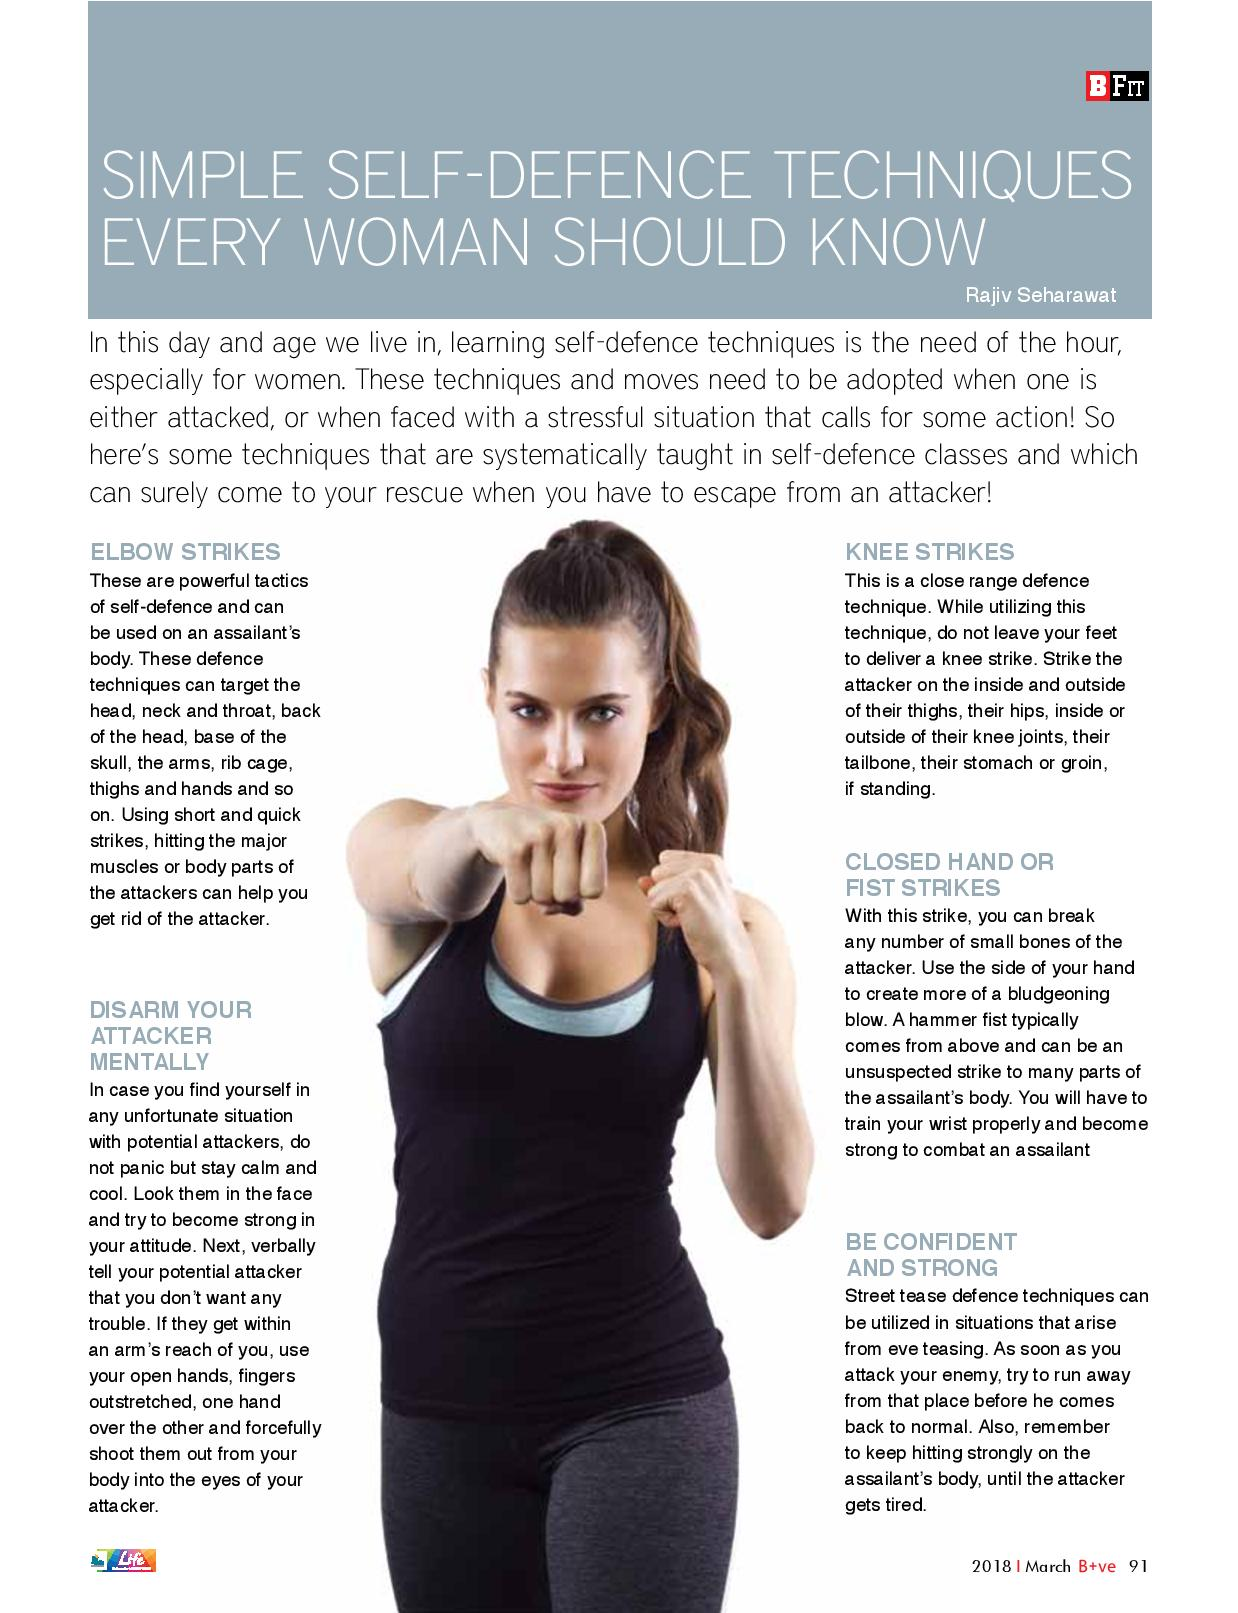 SIMPLE SELF DEFENCE TECHNIQUES EVERY WOMAN SHOULD KNOW